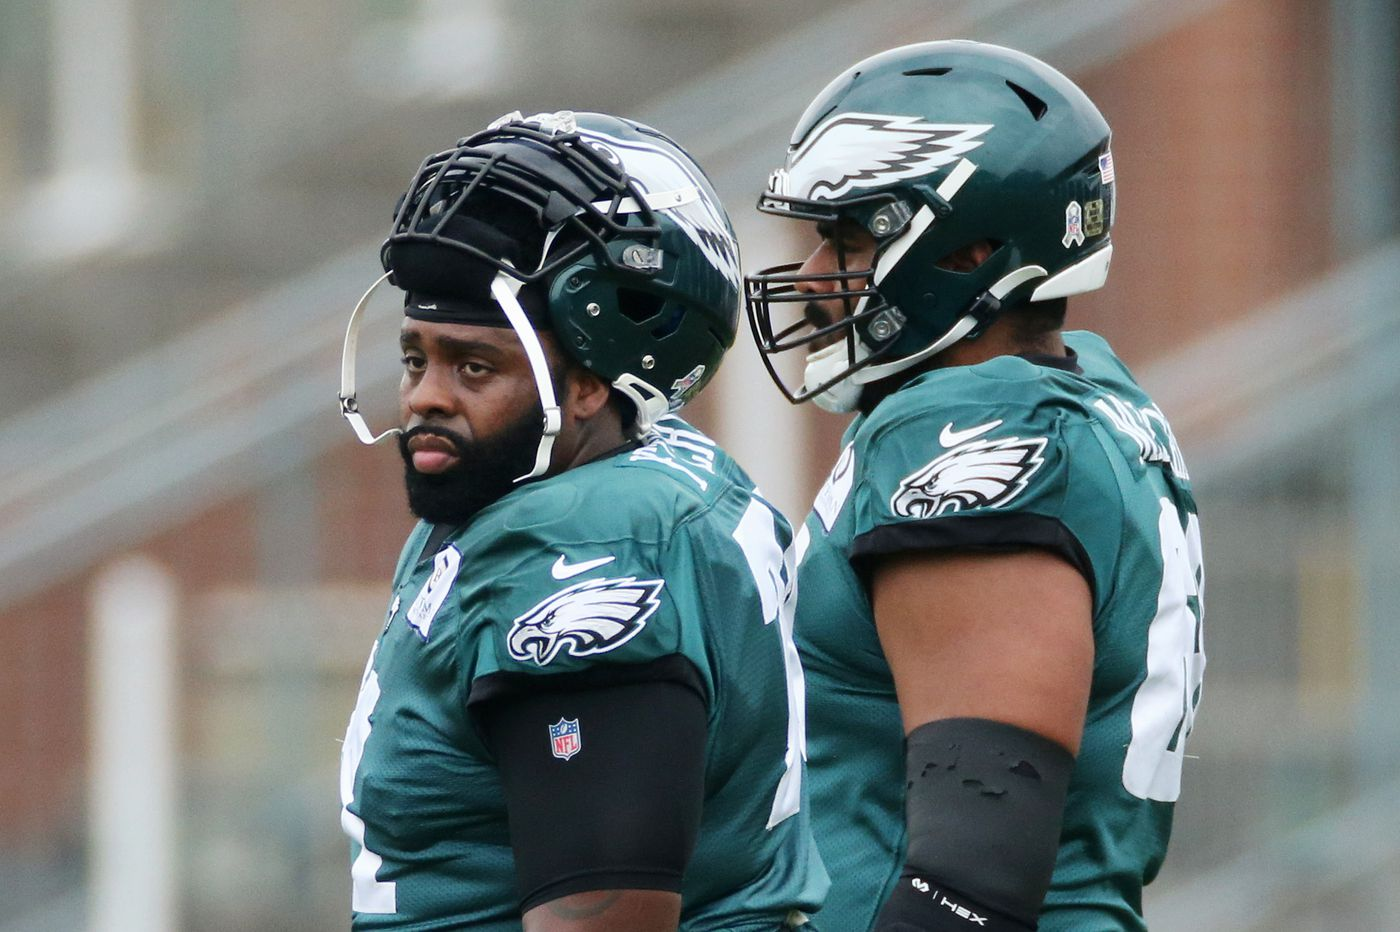 Jason Peters is back at left tackle for the Eagles, Jordan Mailata at right tackle, but that's subject to change